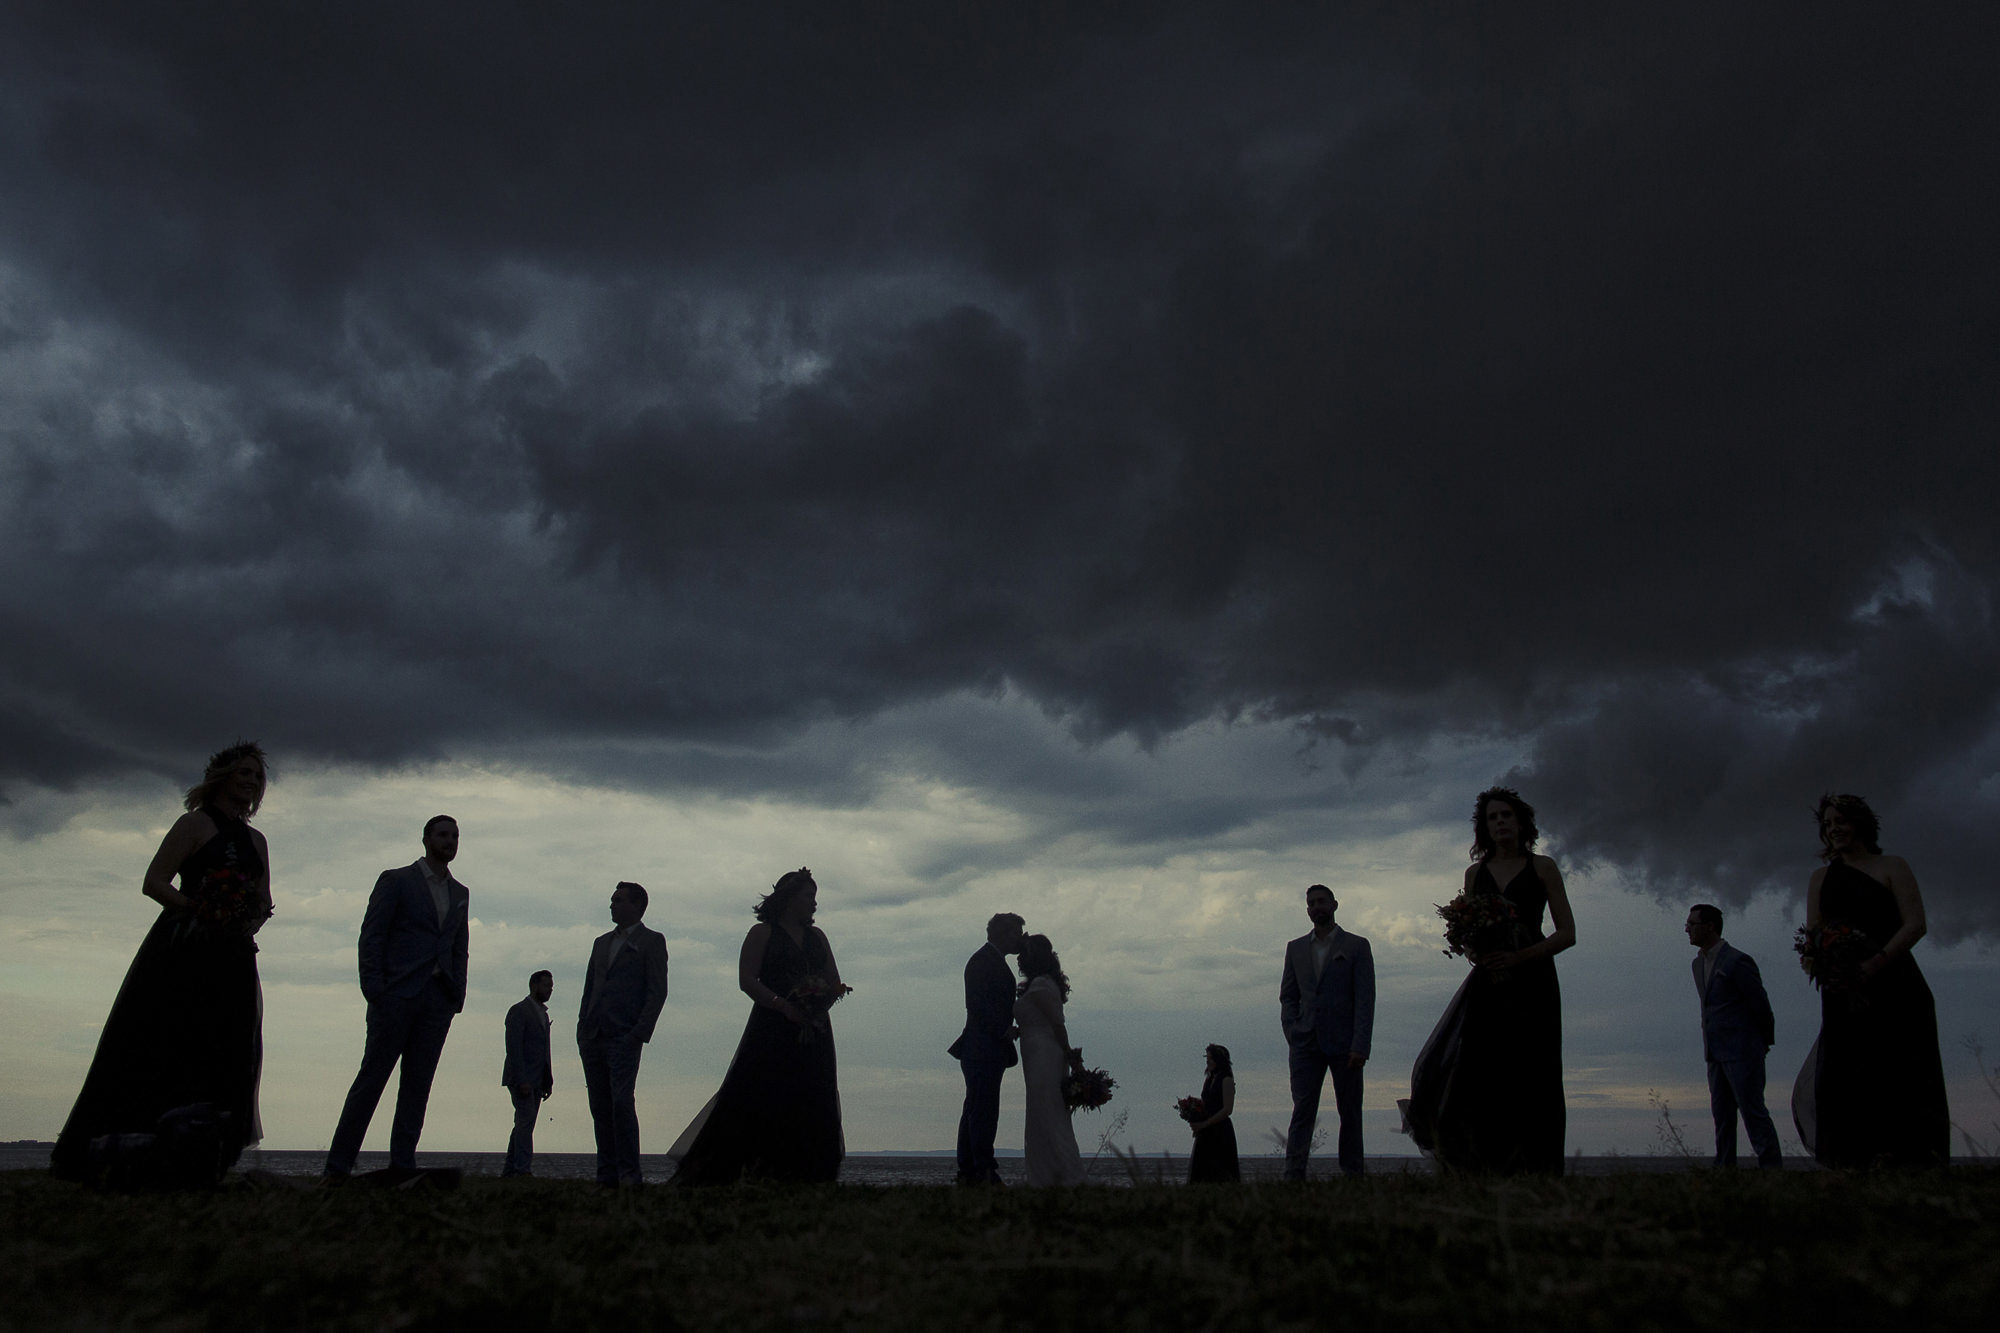 Silhouette of wedding party in field, by Dan O' Day